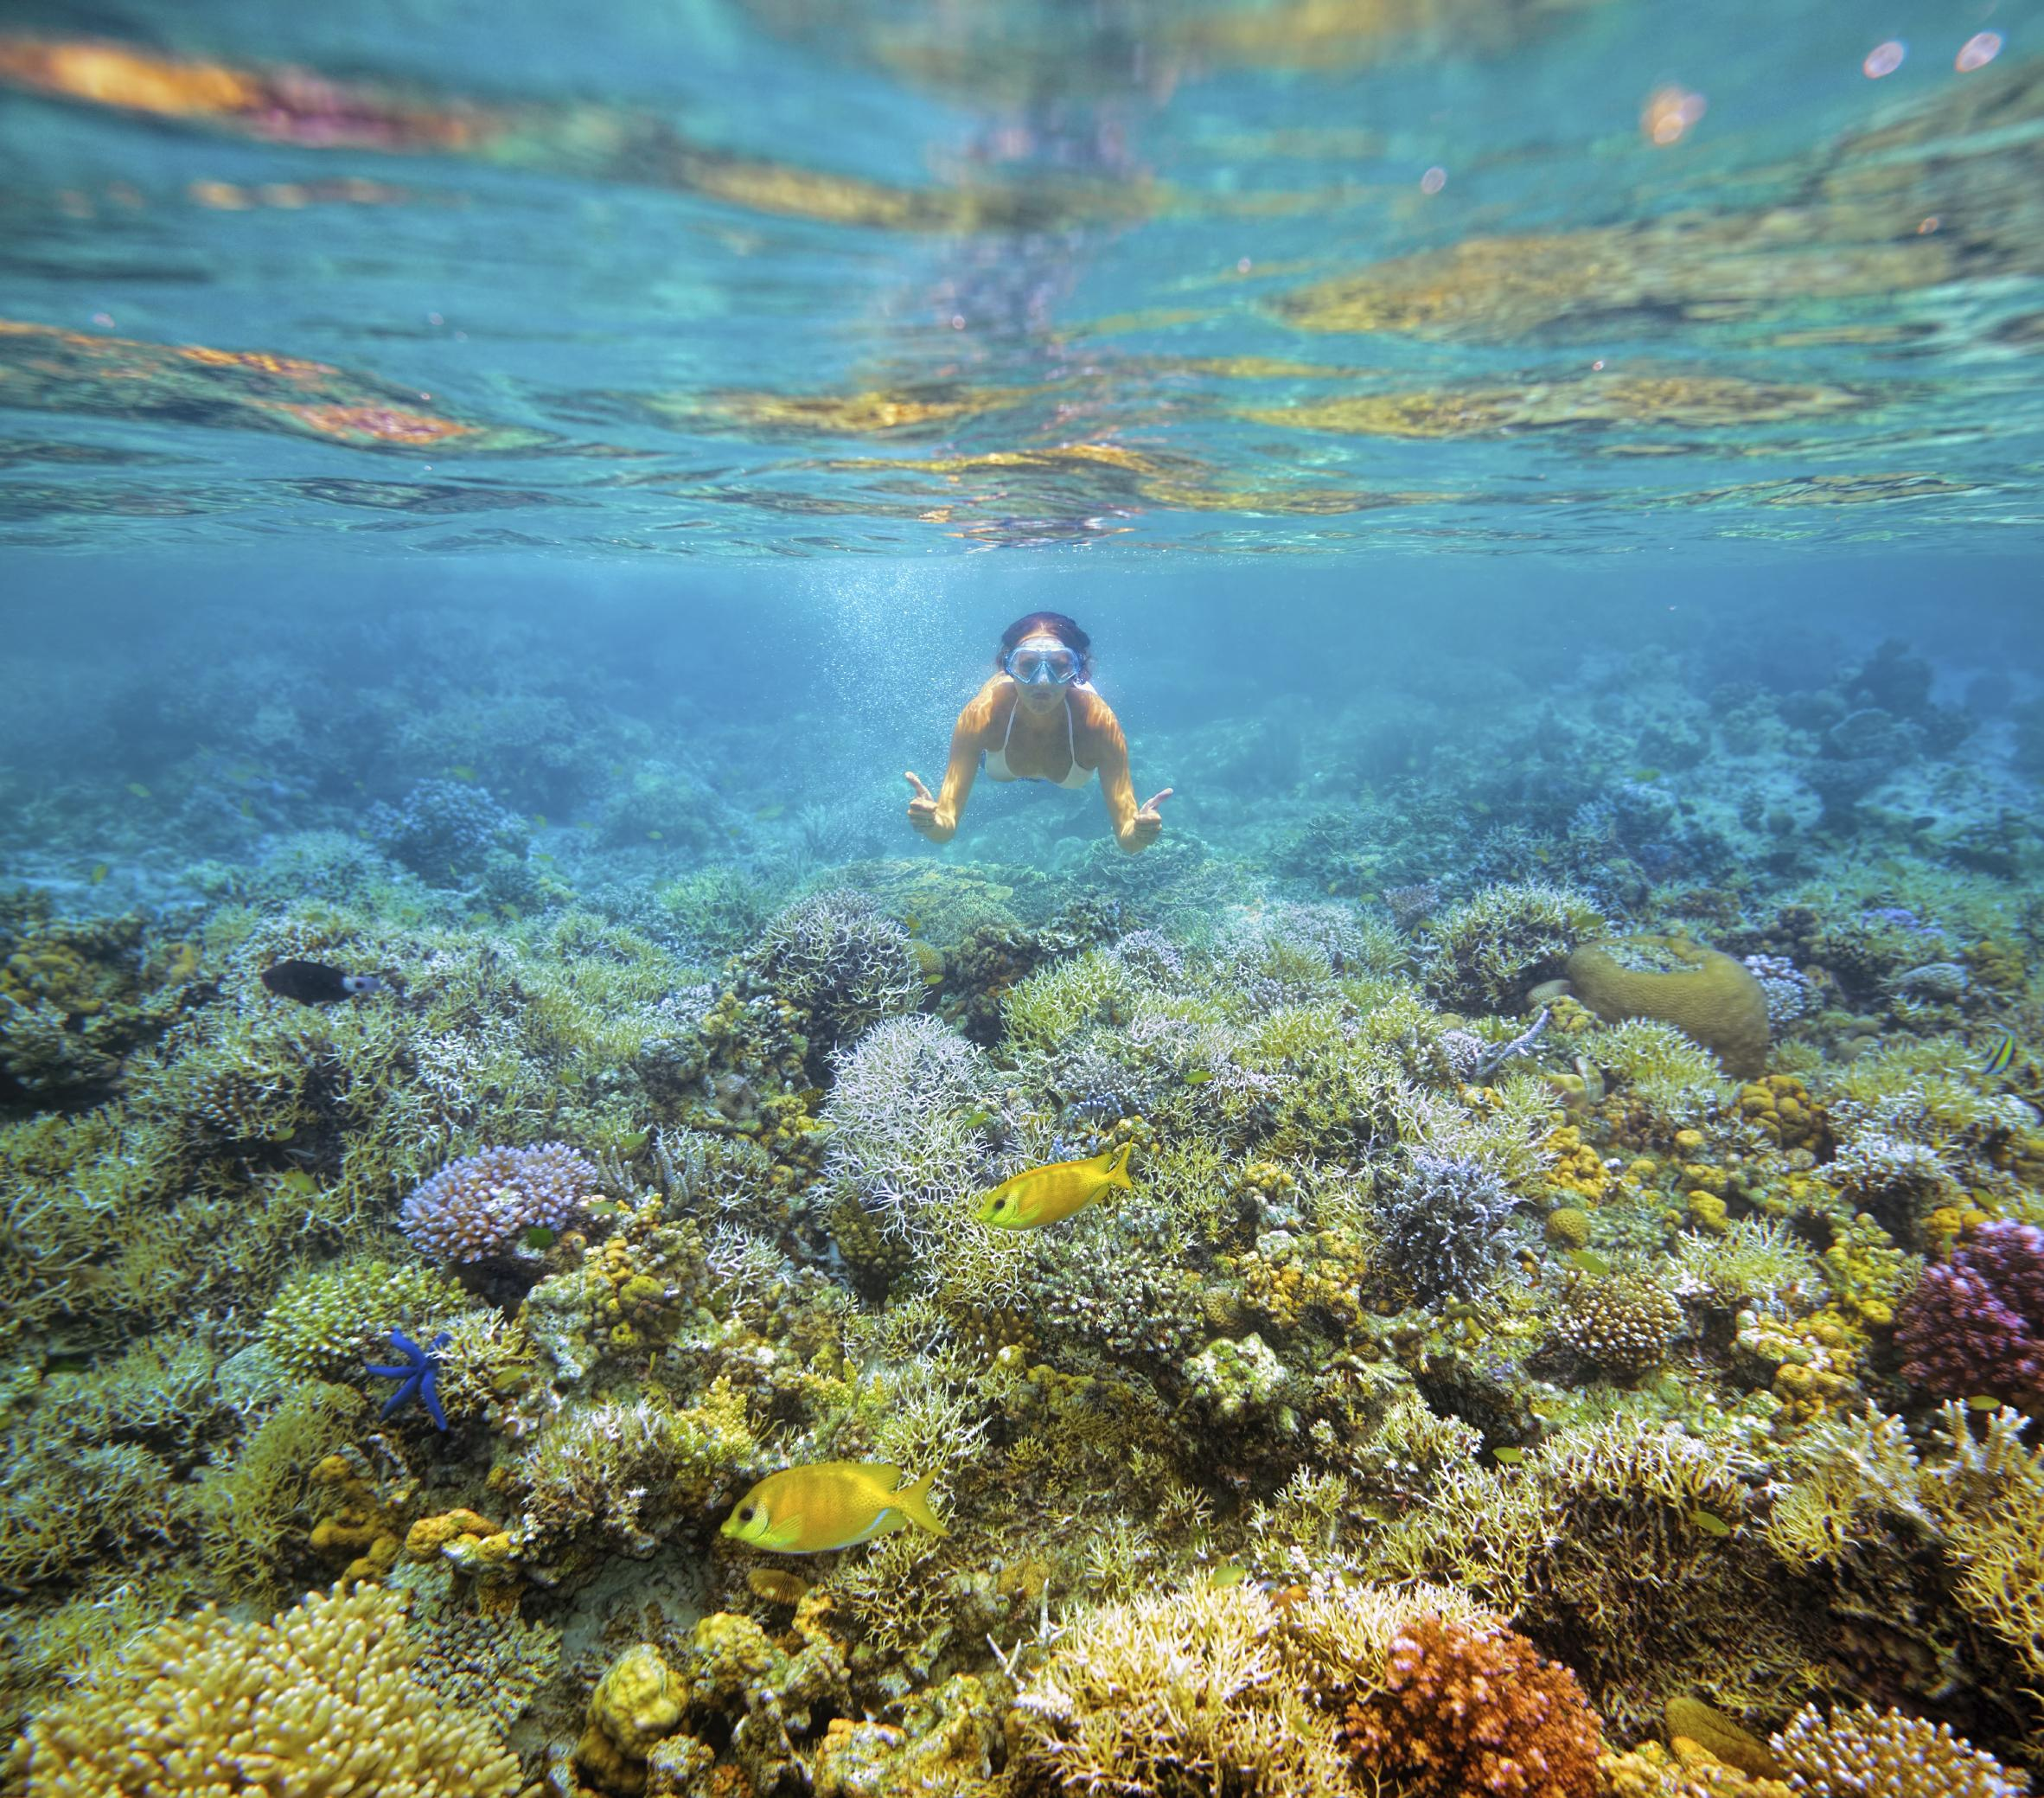 10 Best Luzon Island Tours & Vacation Packages 2020/2021